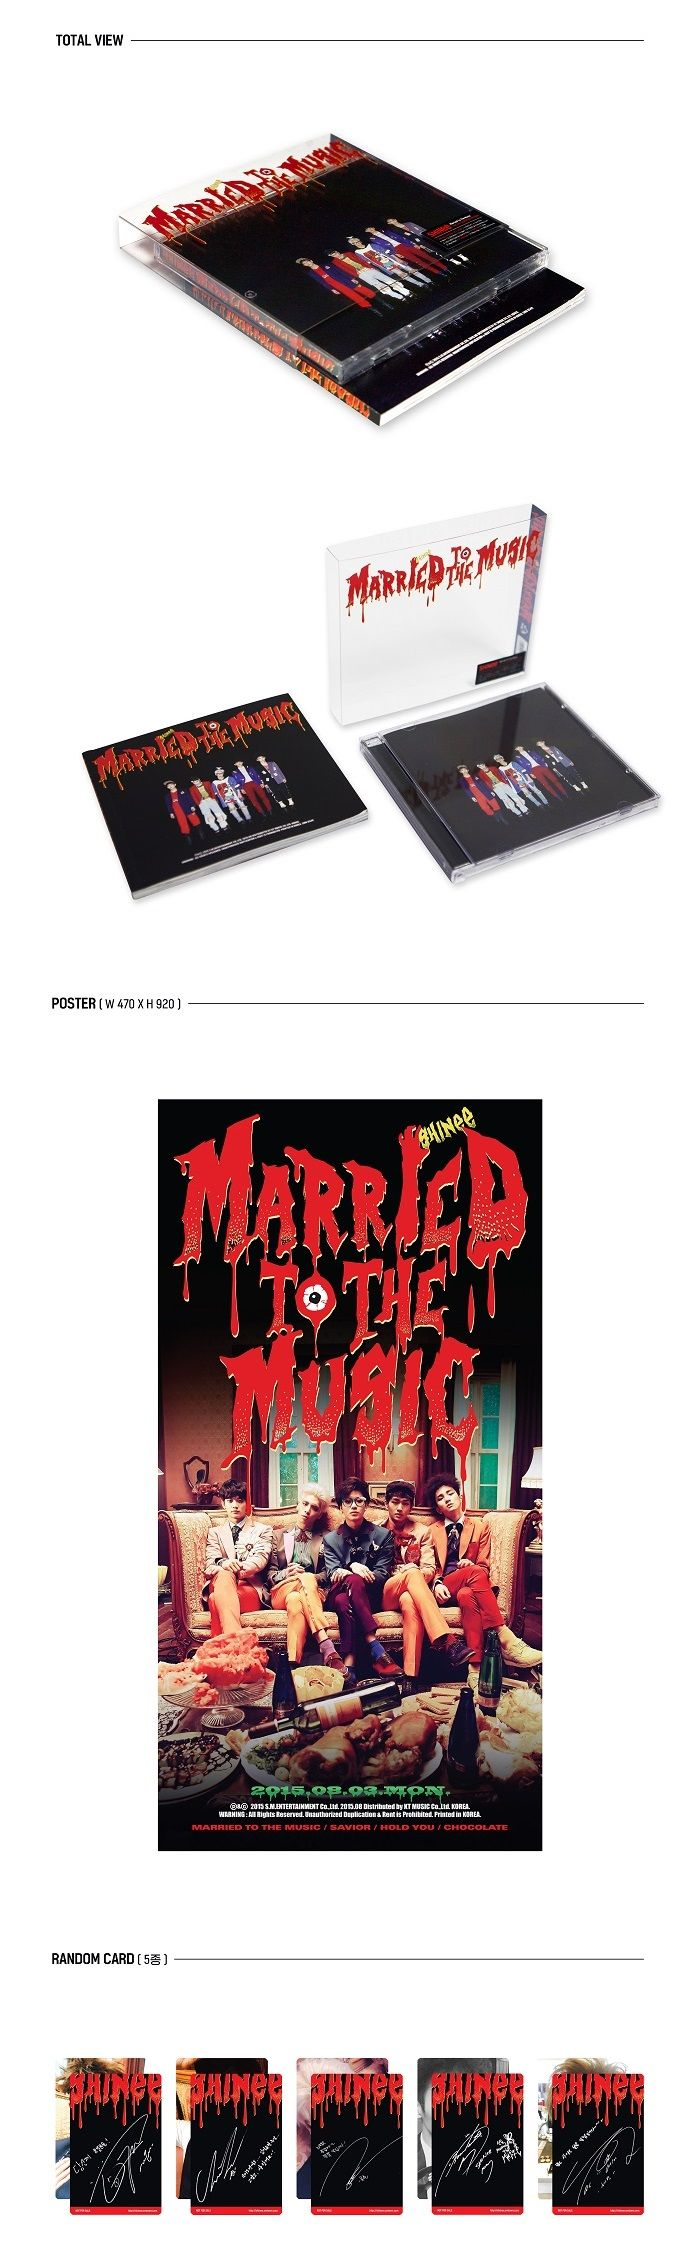 SHINEE 4th REPACKAGE Album - MARRIED TO THE MUSIC CD + Poster